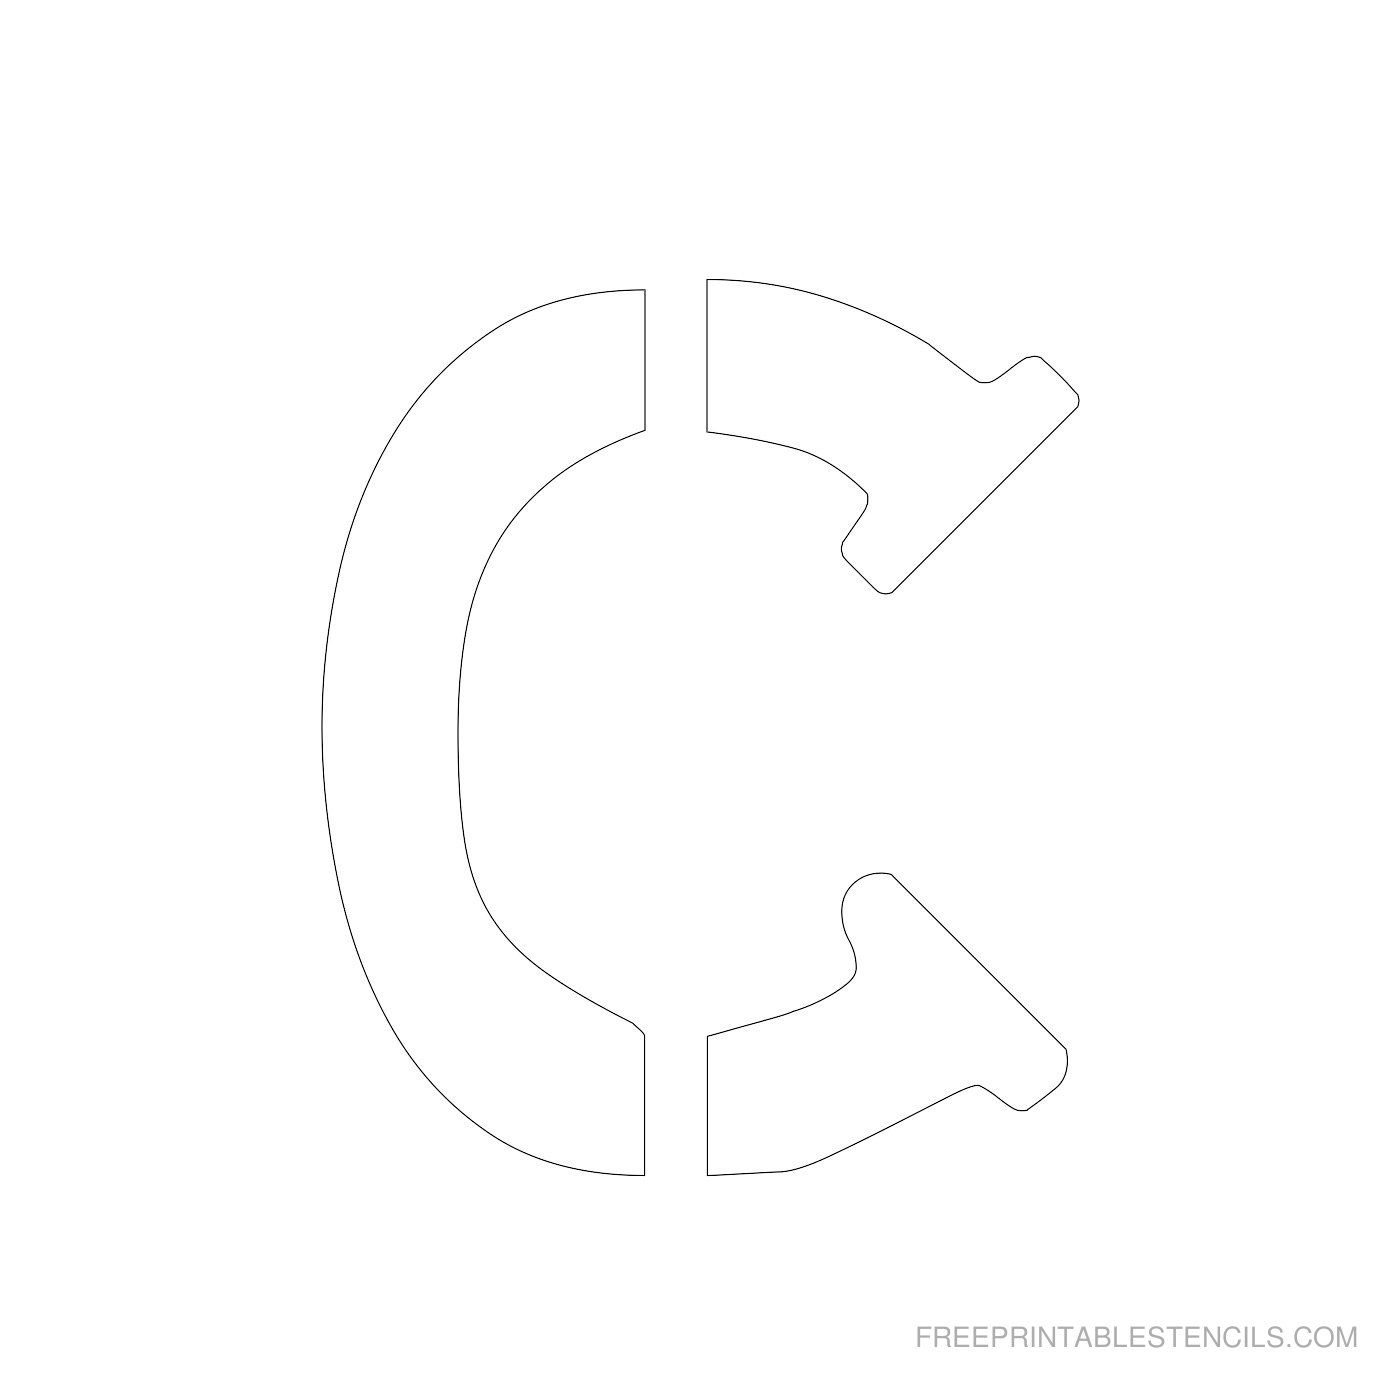 Printable 4 Inch Letter Stencils